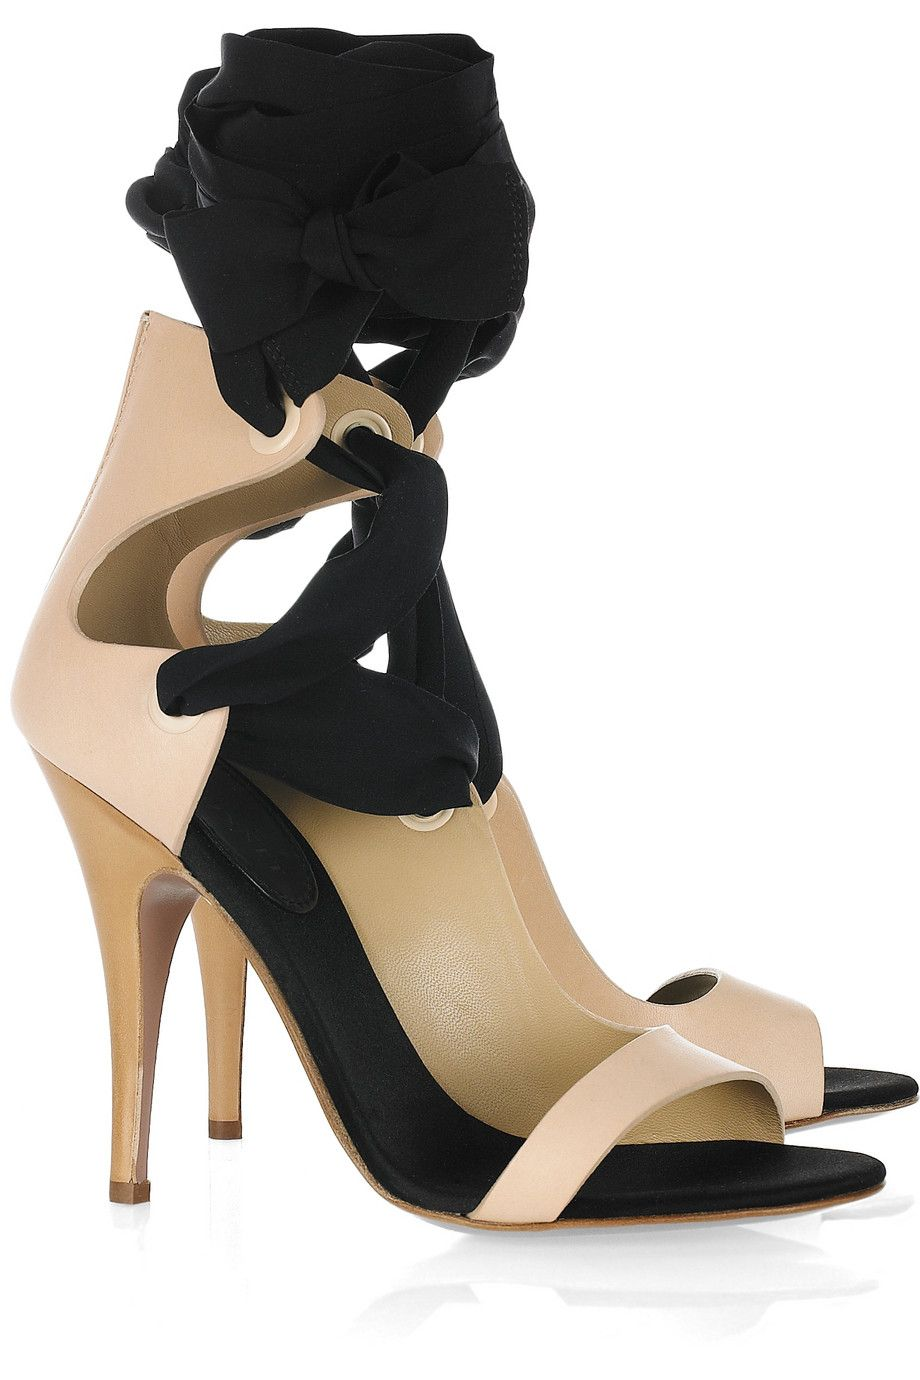 Vionnet Leather Heels XNbwno0